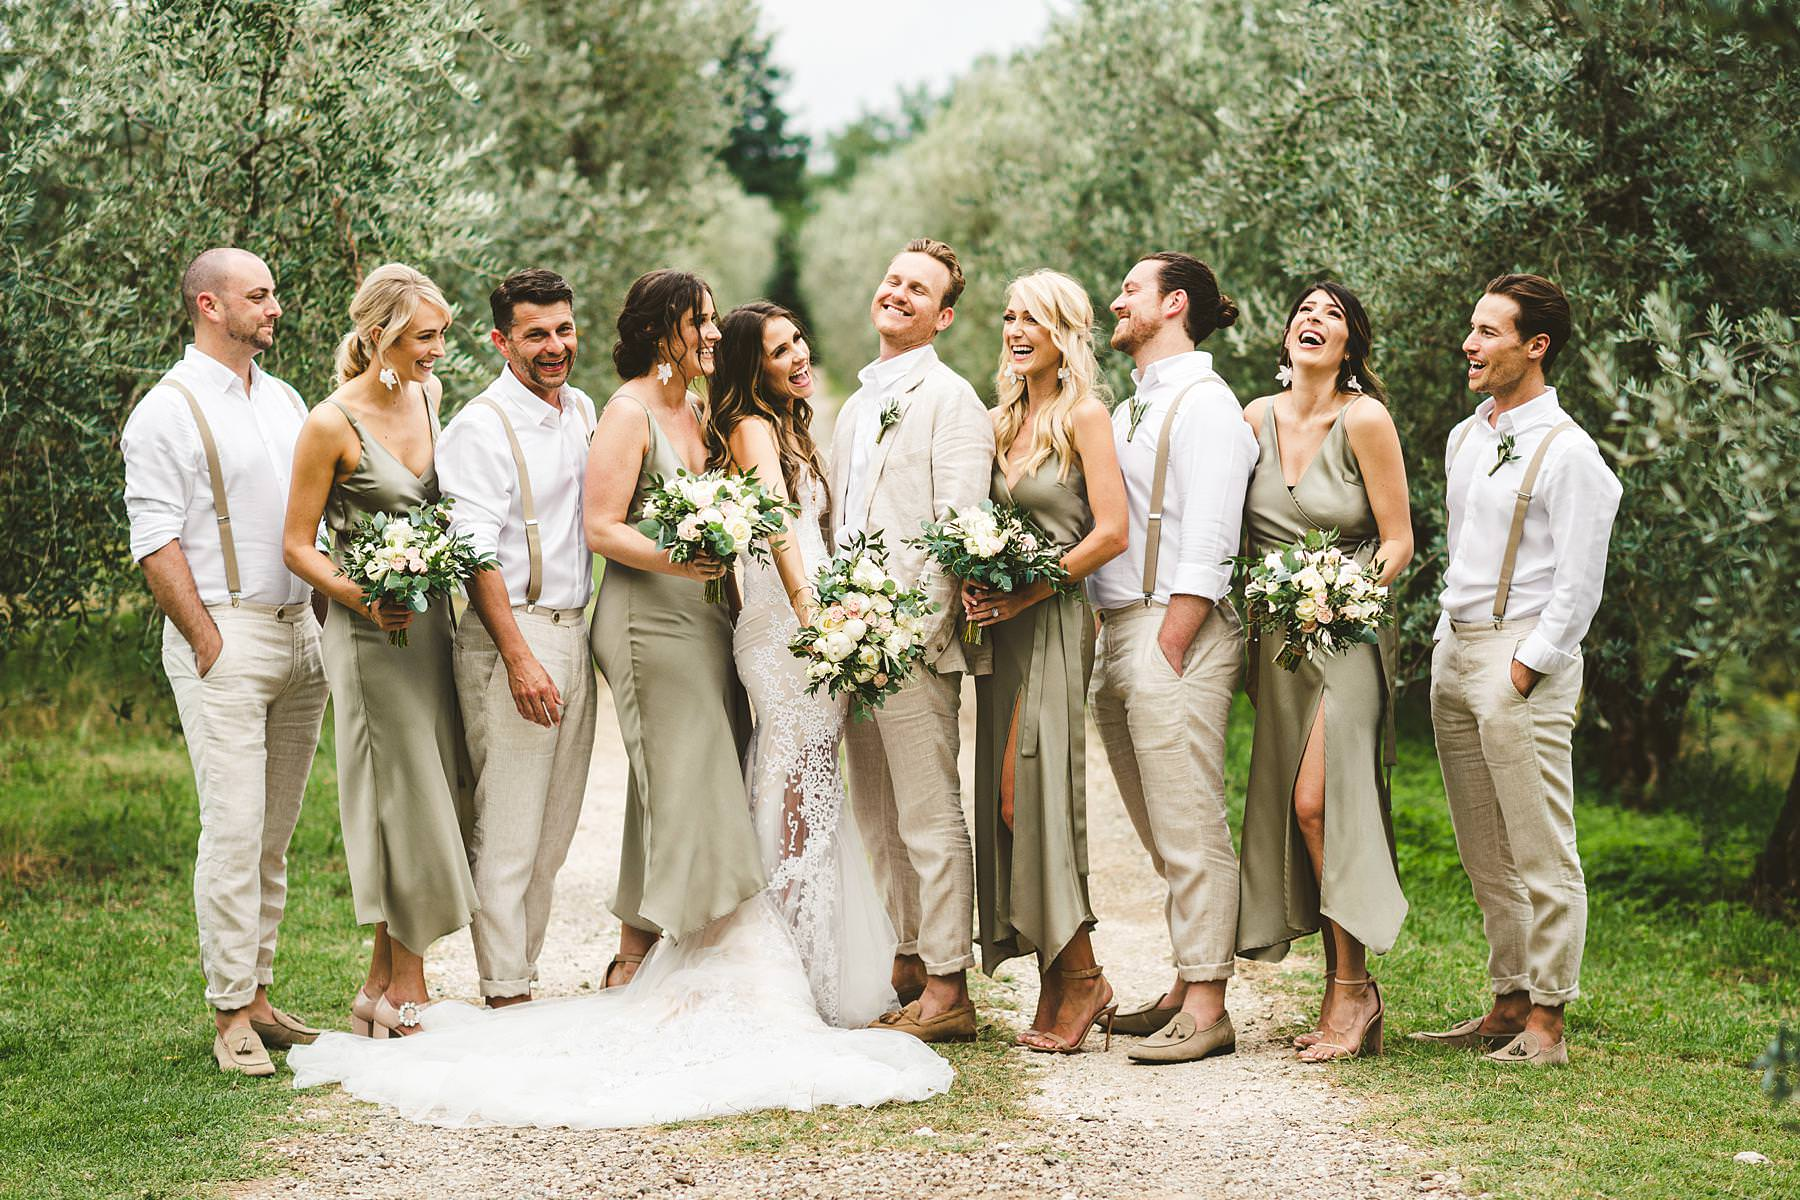 Elegant and beautiful bridal party group shoot at the historic residence of Villa Il Poggiale. Modern and unusual wedding framed by the olive groves of Chianti